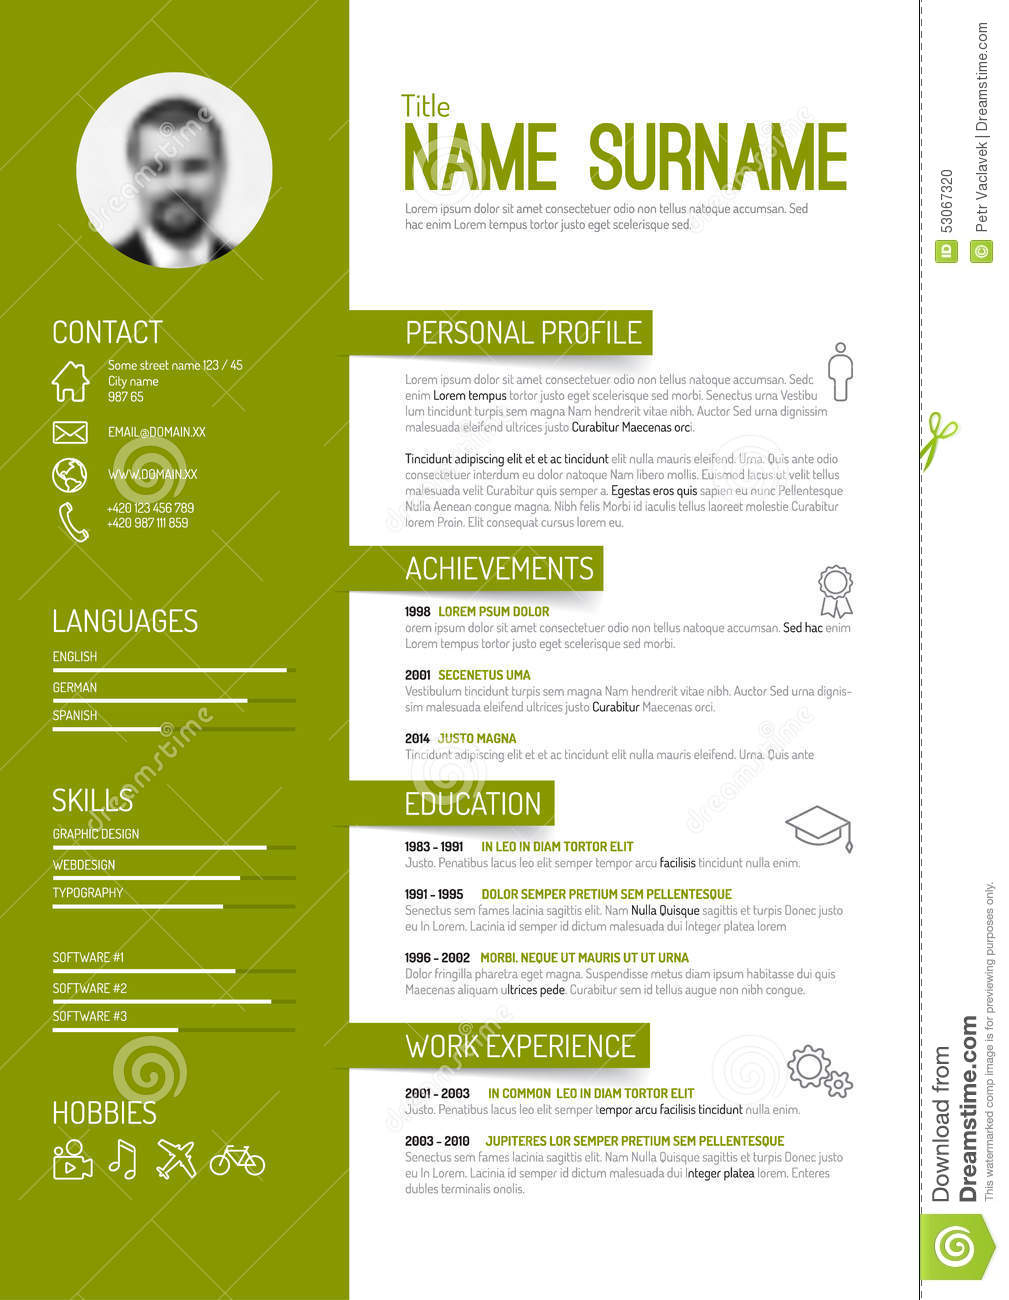 Cv / Resume Template Stock Vector - Image: 53067320